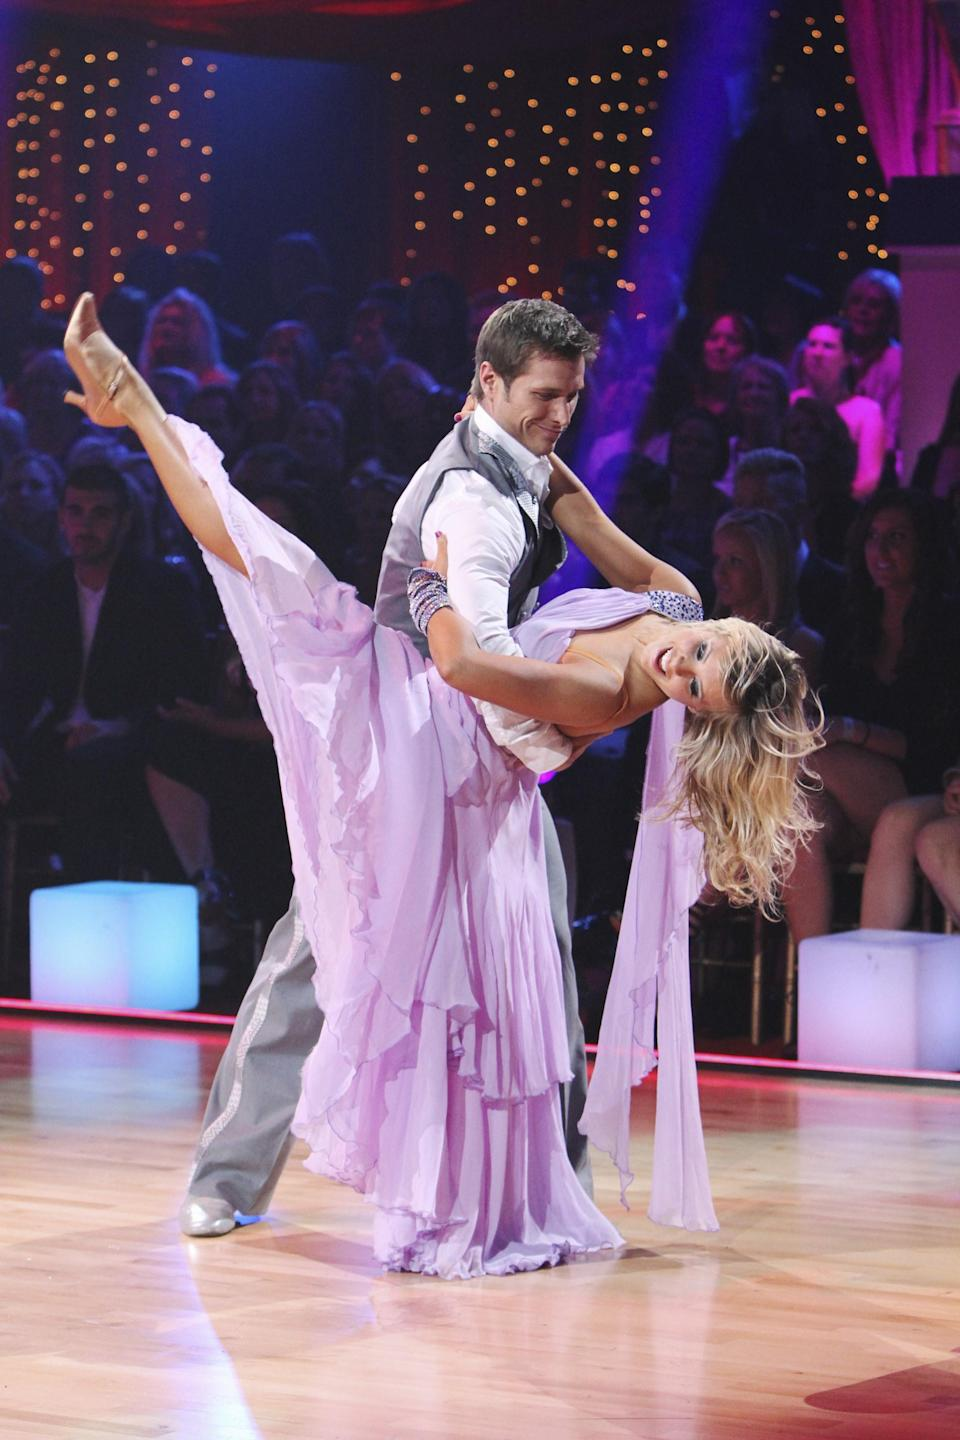 """Pavelka wasn't everyone's favorite Bachelor, but he definitely had the moves to win over the <em>DWTS</em> judges during season 10 in 2010. The pilot was eliminated in his sixth week but then invited back to perform in the finale with his then fiancée, Vienna Girardi, to the theme song of his <em>Bachelor</em> season, """"<a href=""""https://www.youtube.com/watch?v=PTp9qGMMFcE"""" rel=""""nofollow noopener"""" target=""""_blank"""" data-ylk=""""slk:On the Wings of Love"""" class=""""link rapid-noclick-resp"""">On the Wings of Love</a>."""""""